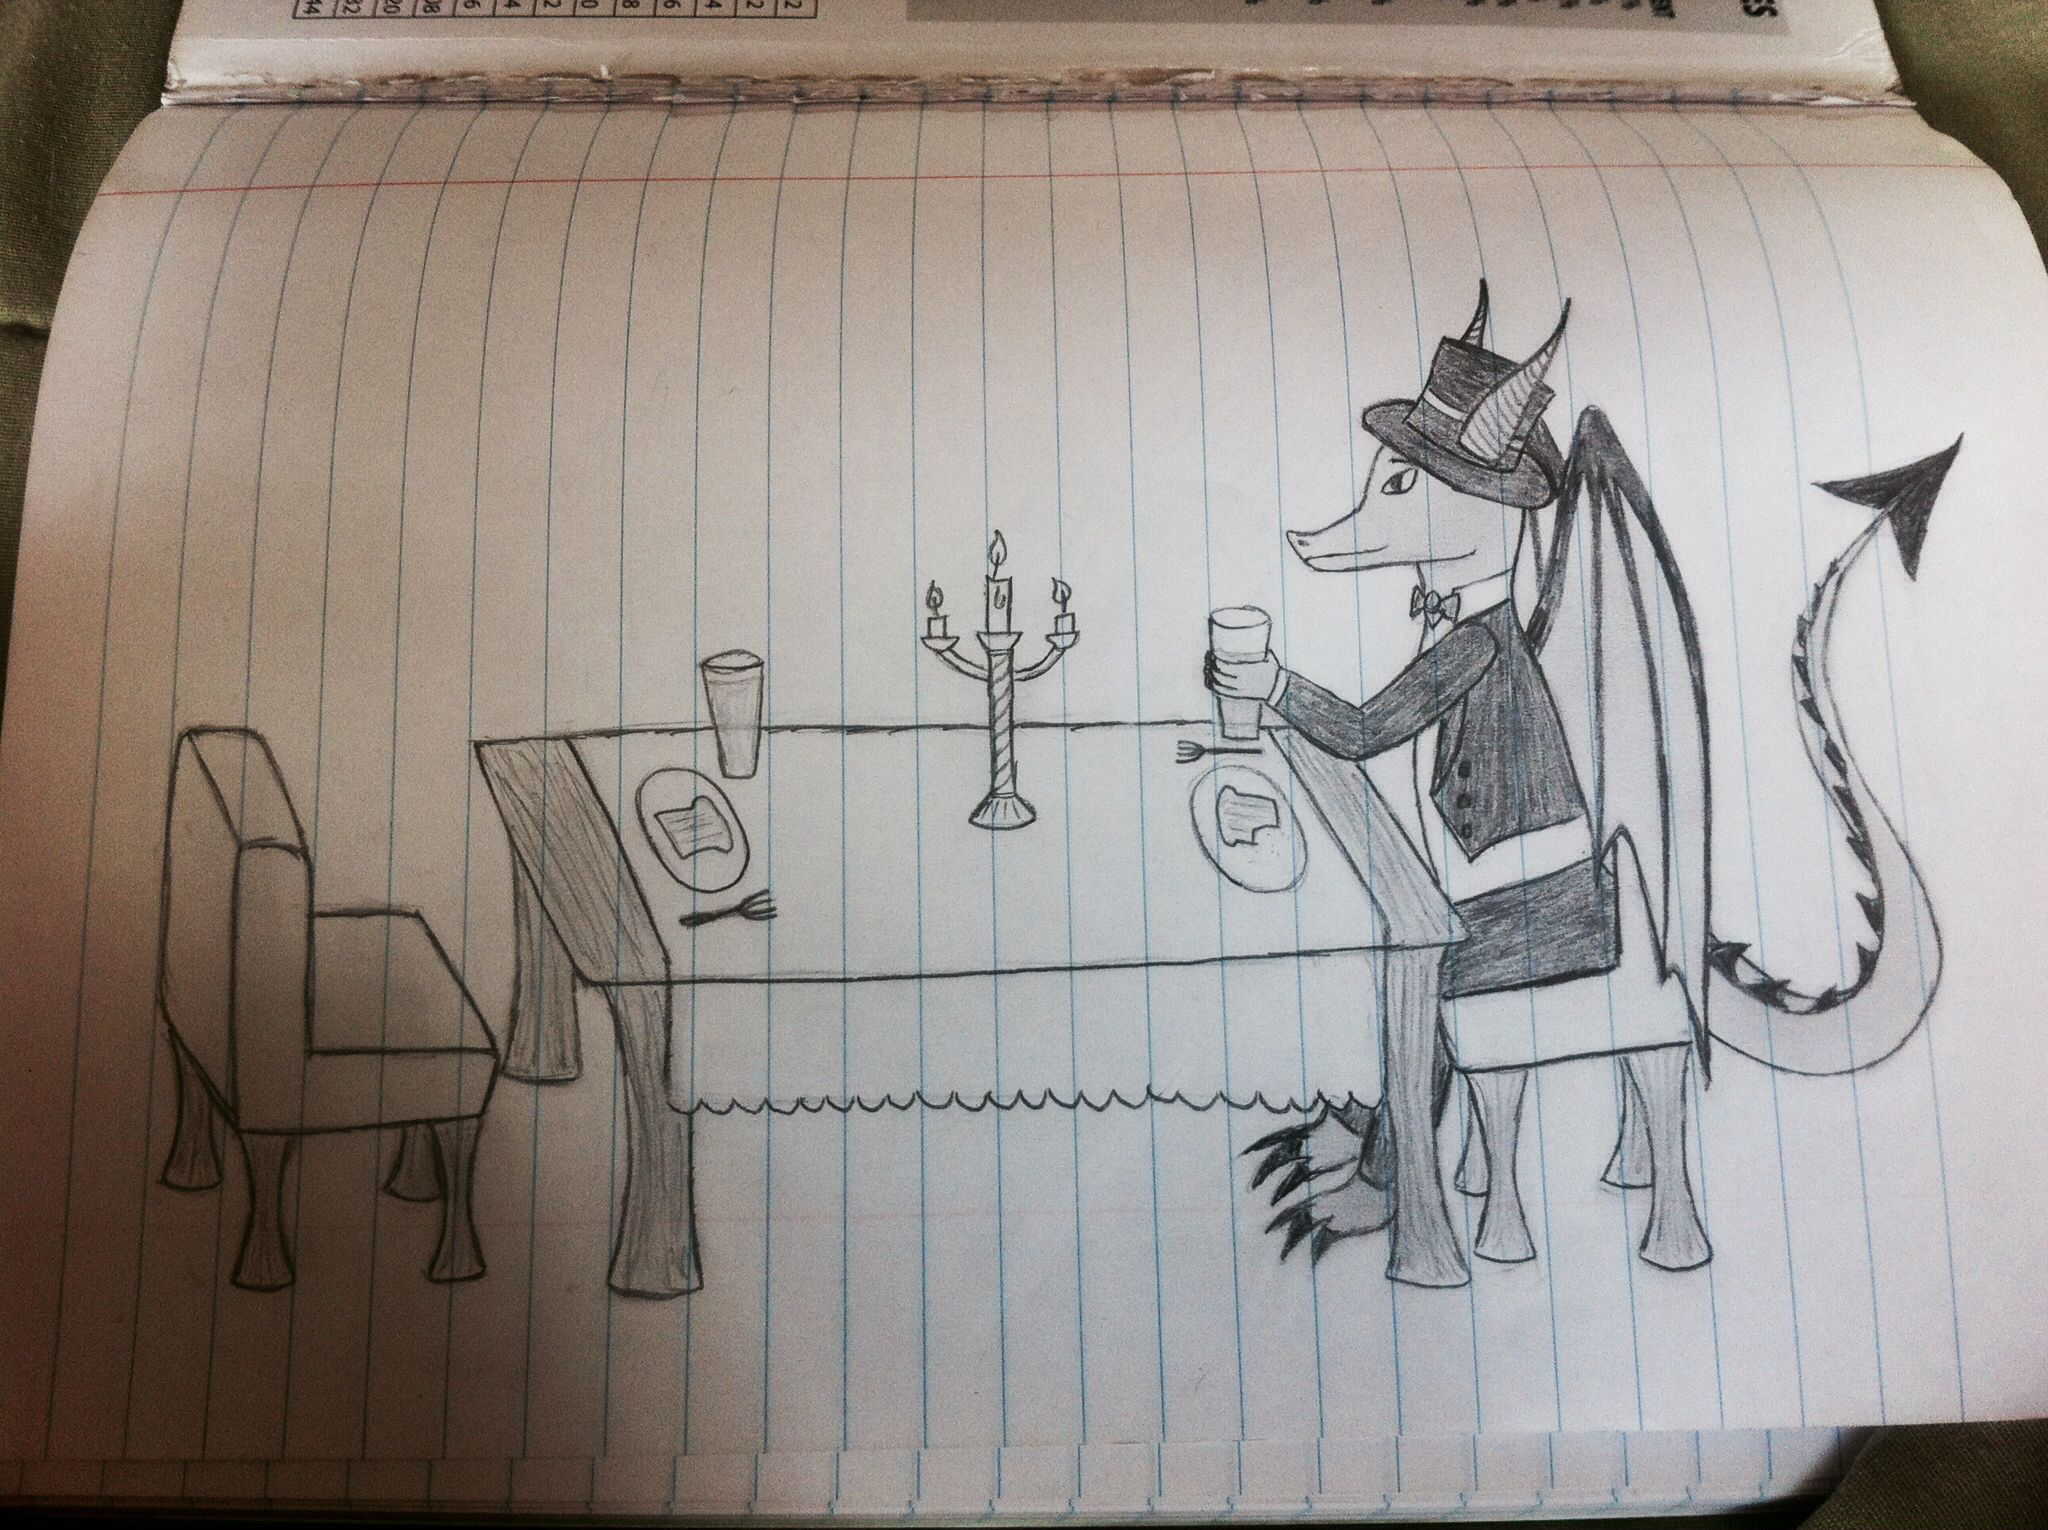 A gentlemanly dragon eating alone.